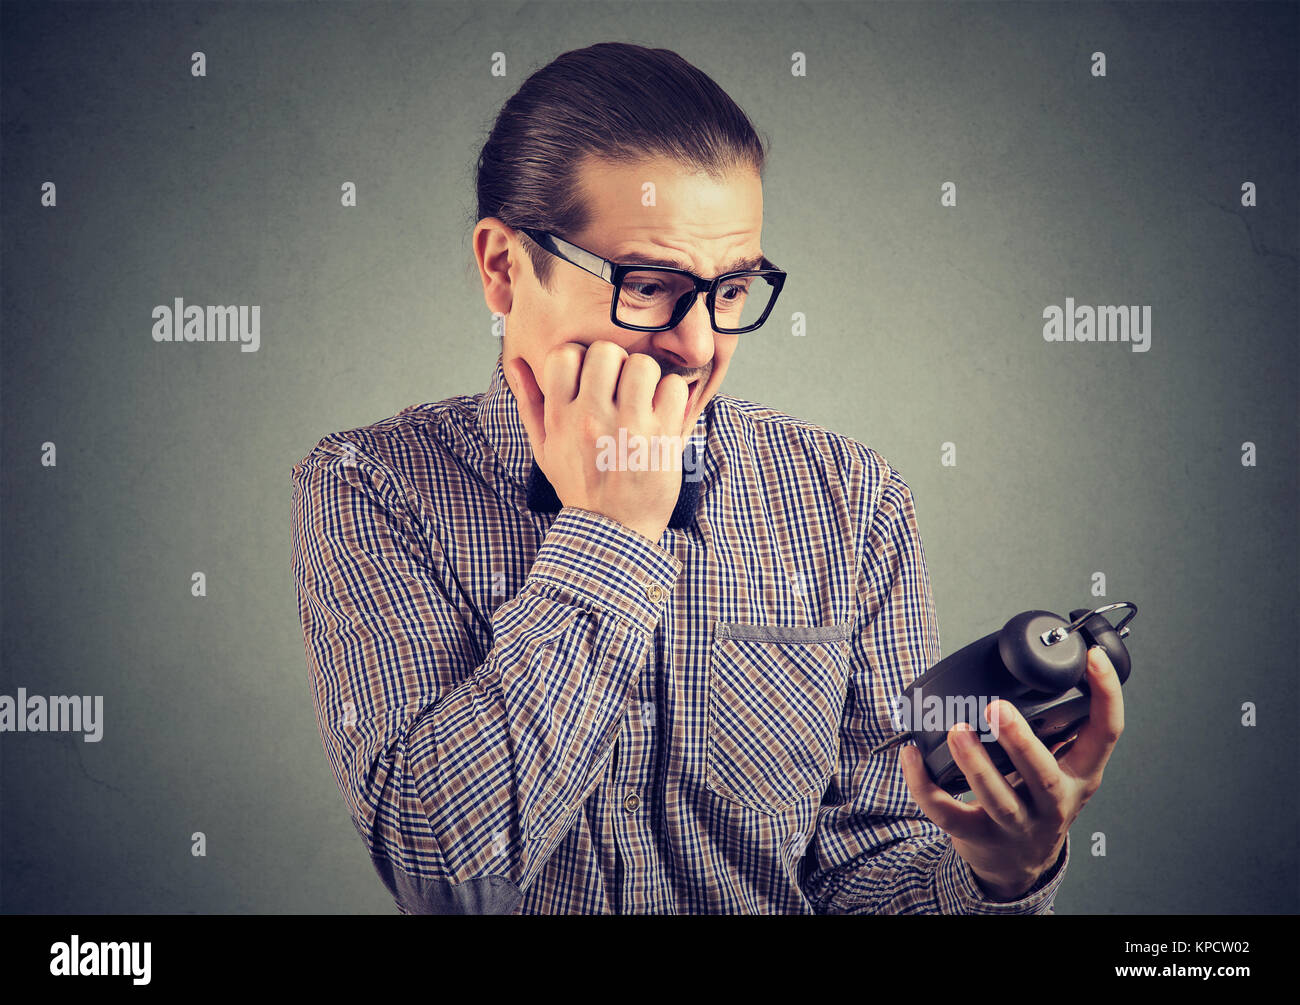 Young man in eyeglasses looking nervously at clock feeling pressure of lack of time. - Stock Image